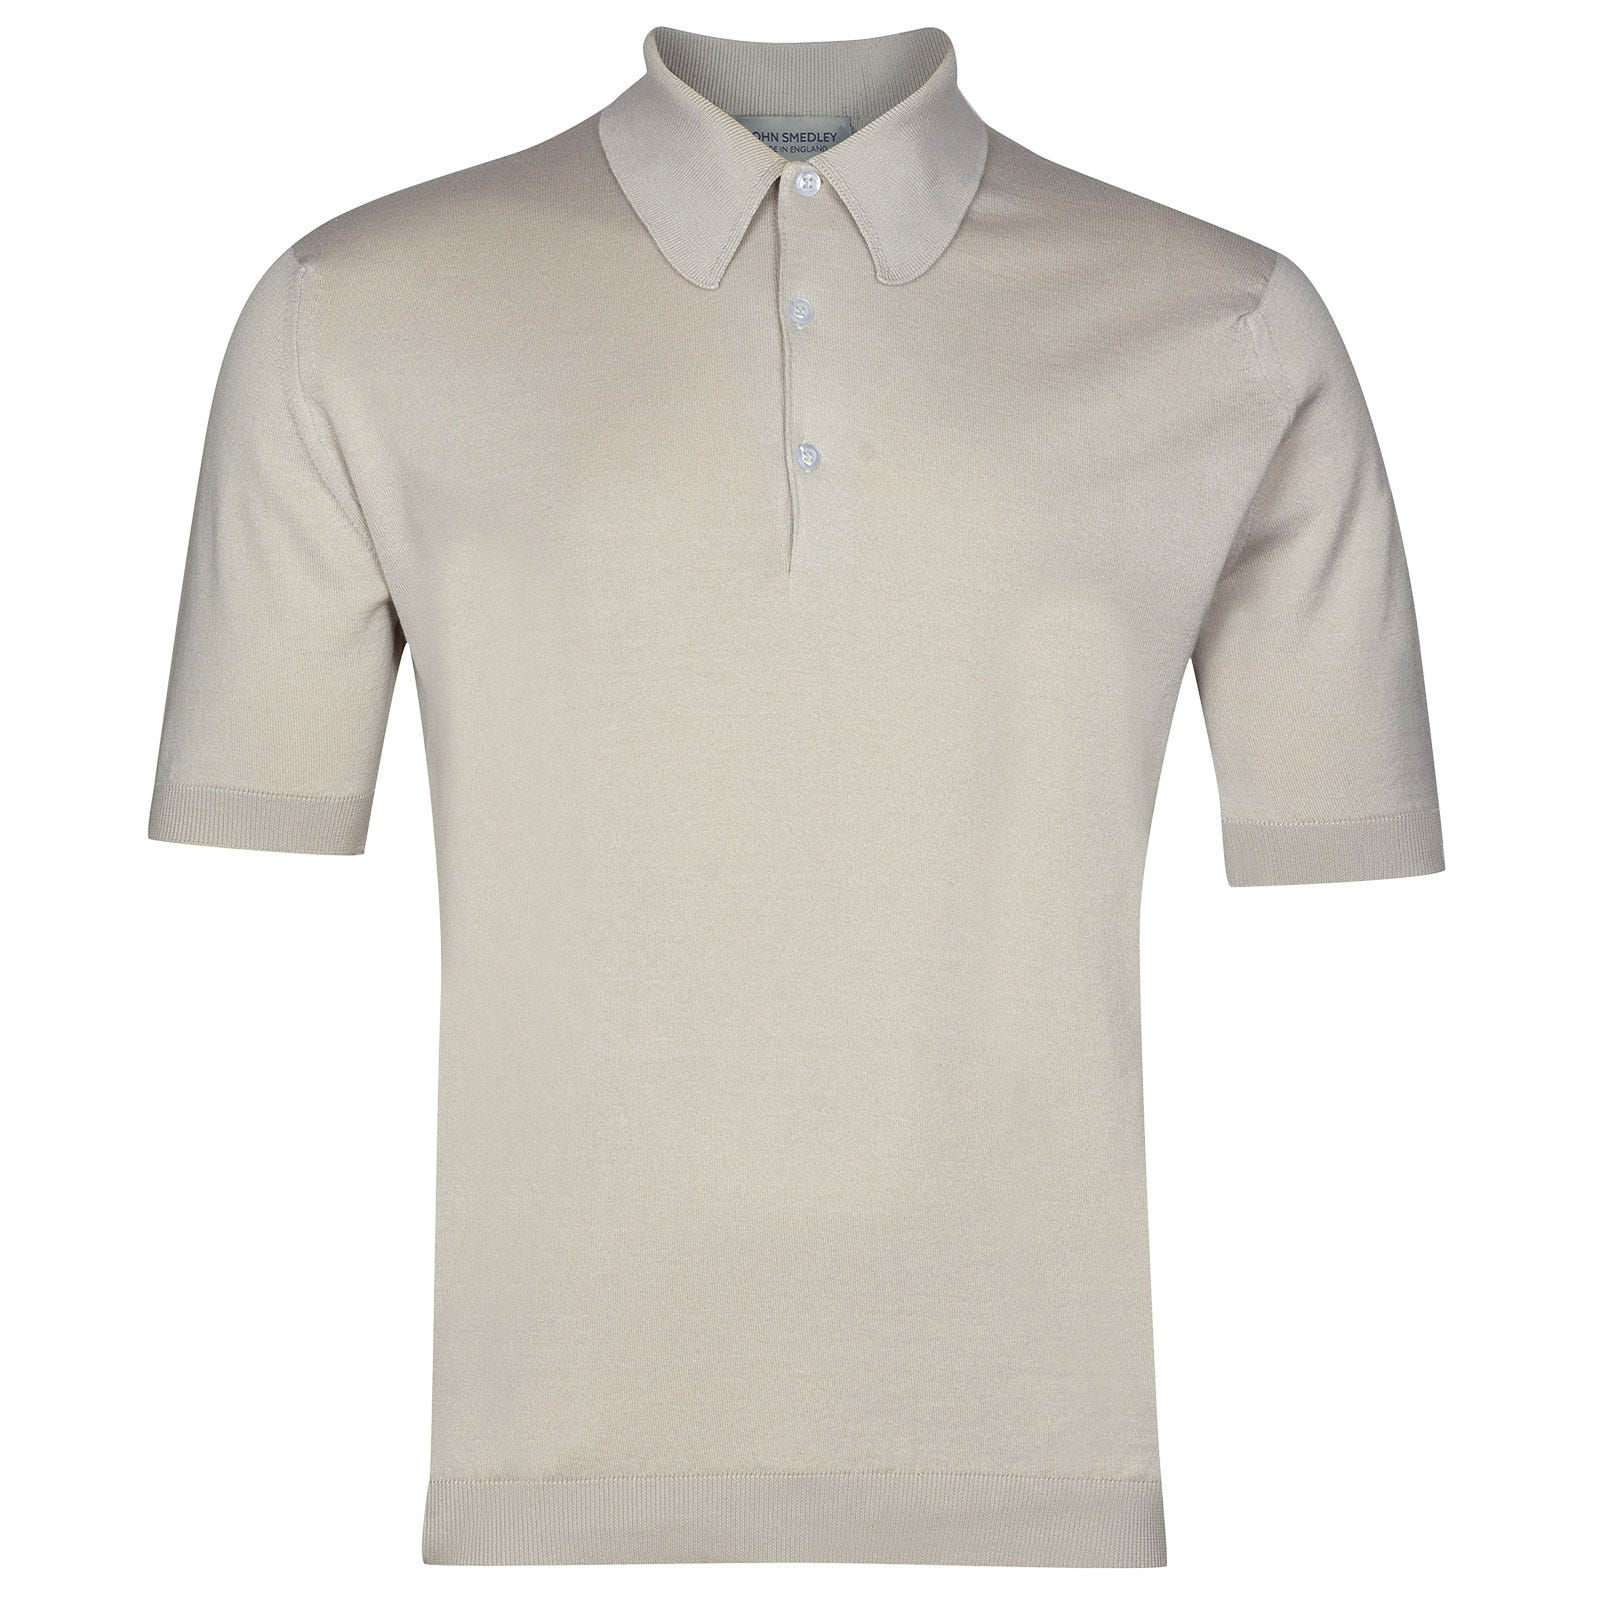 John Smedley Isis Sea Island Cotton Shirt in Brunel Beige-M